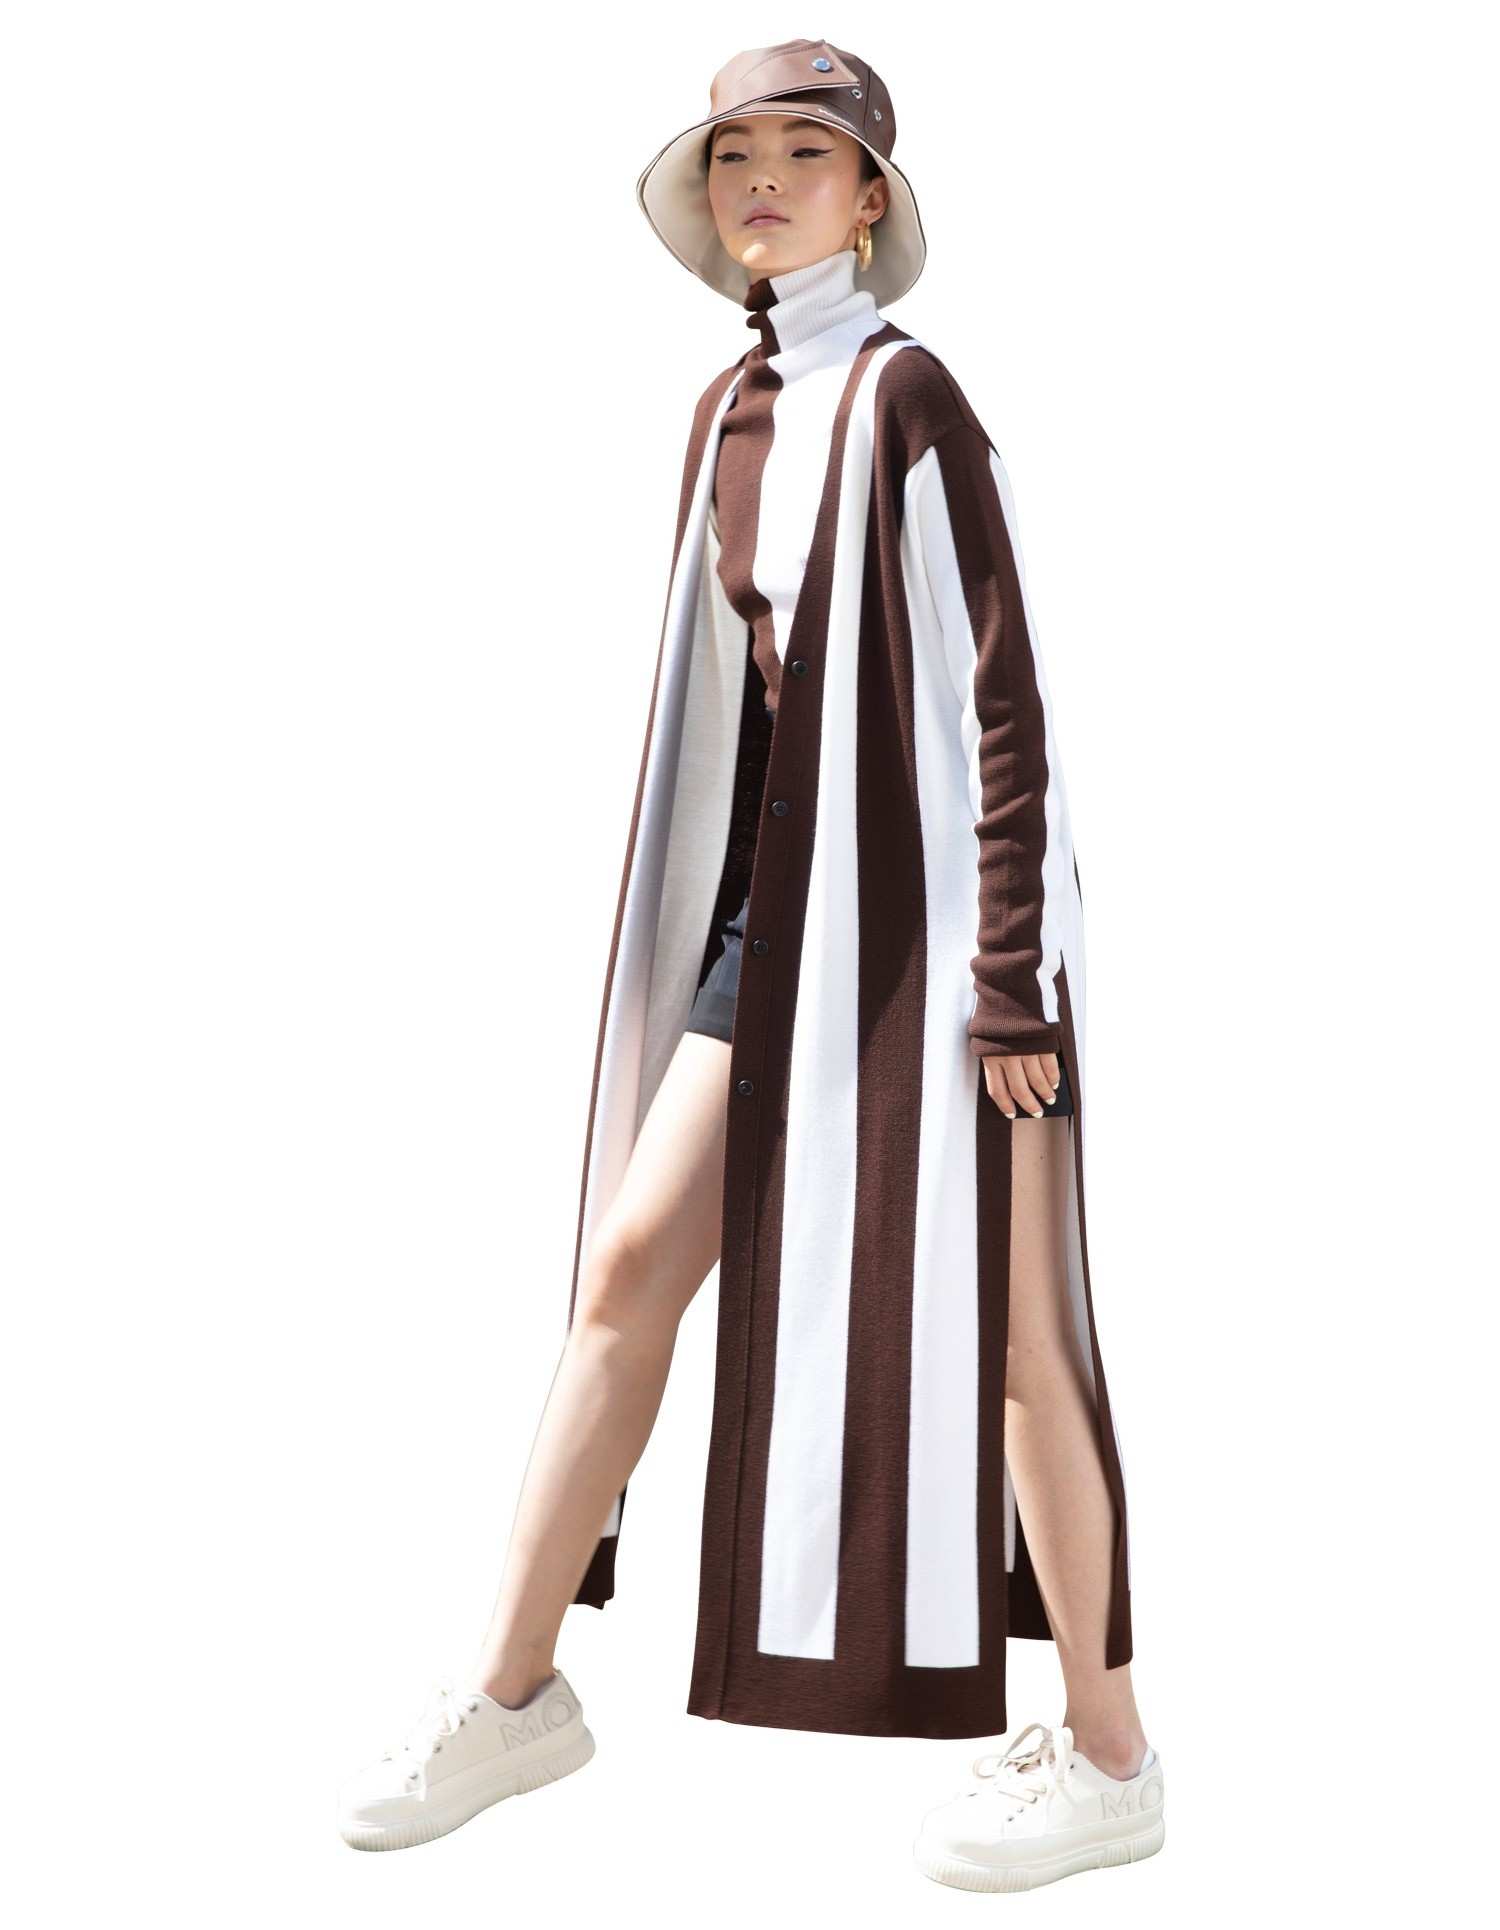 MONSE Long Sleeve Striped Cardigan in Ivory and Chocolate on Model Front View